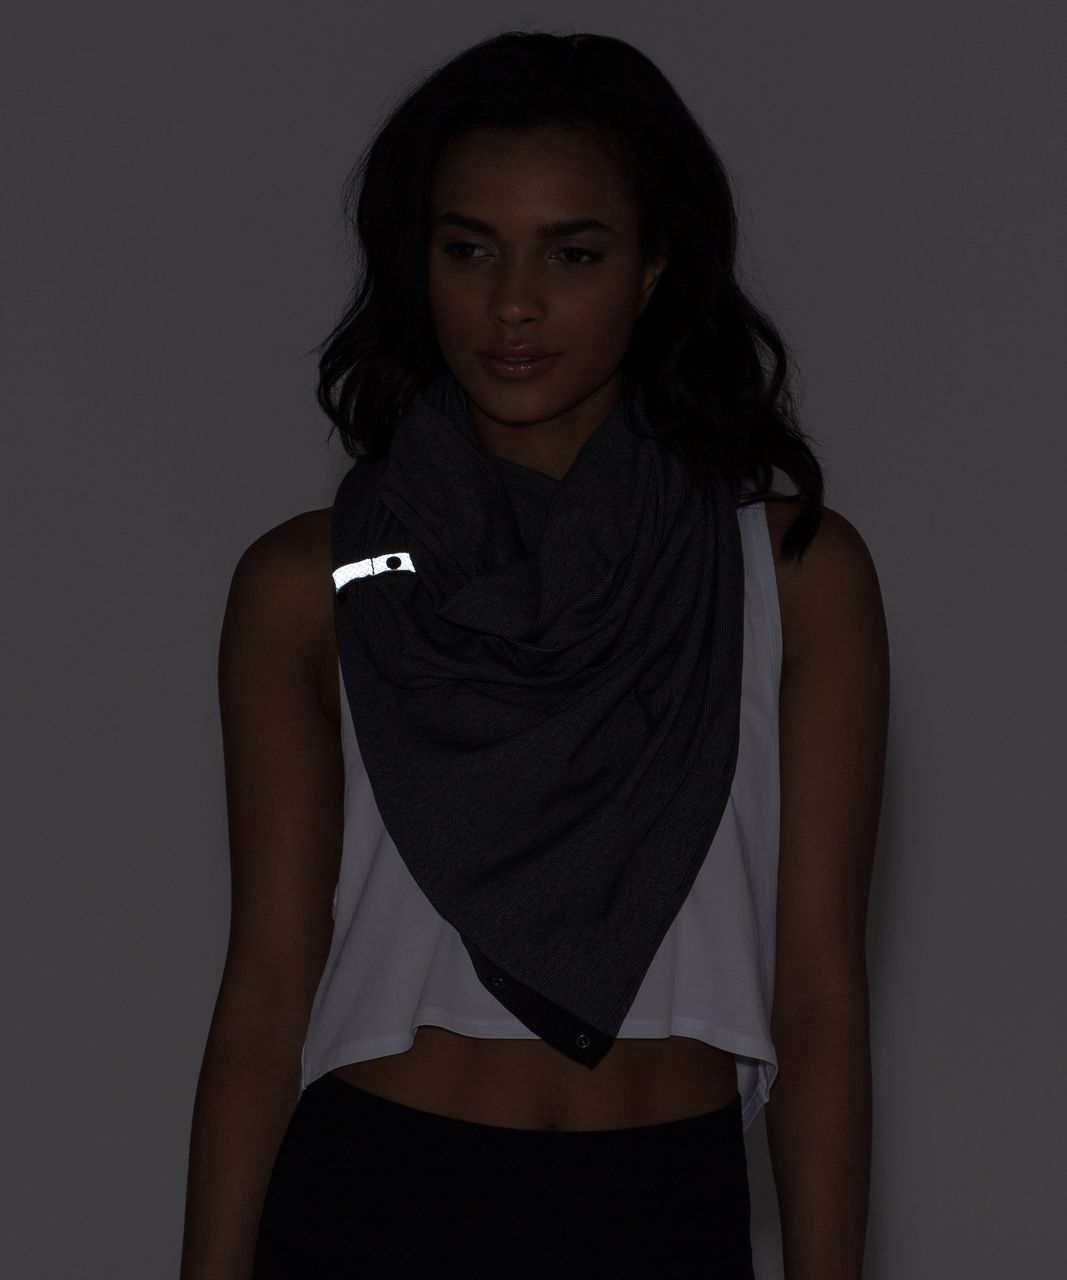 Lululemon Vinyasa Scarf *Rulu - Wee Stripe Black Heathered Slate / Black